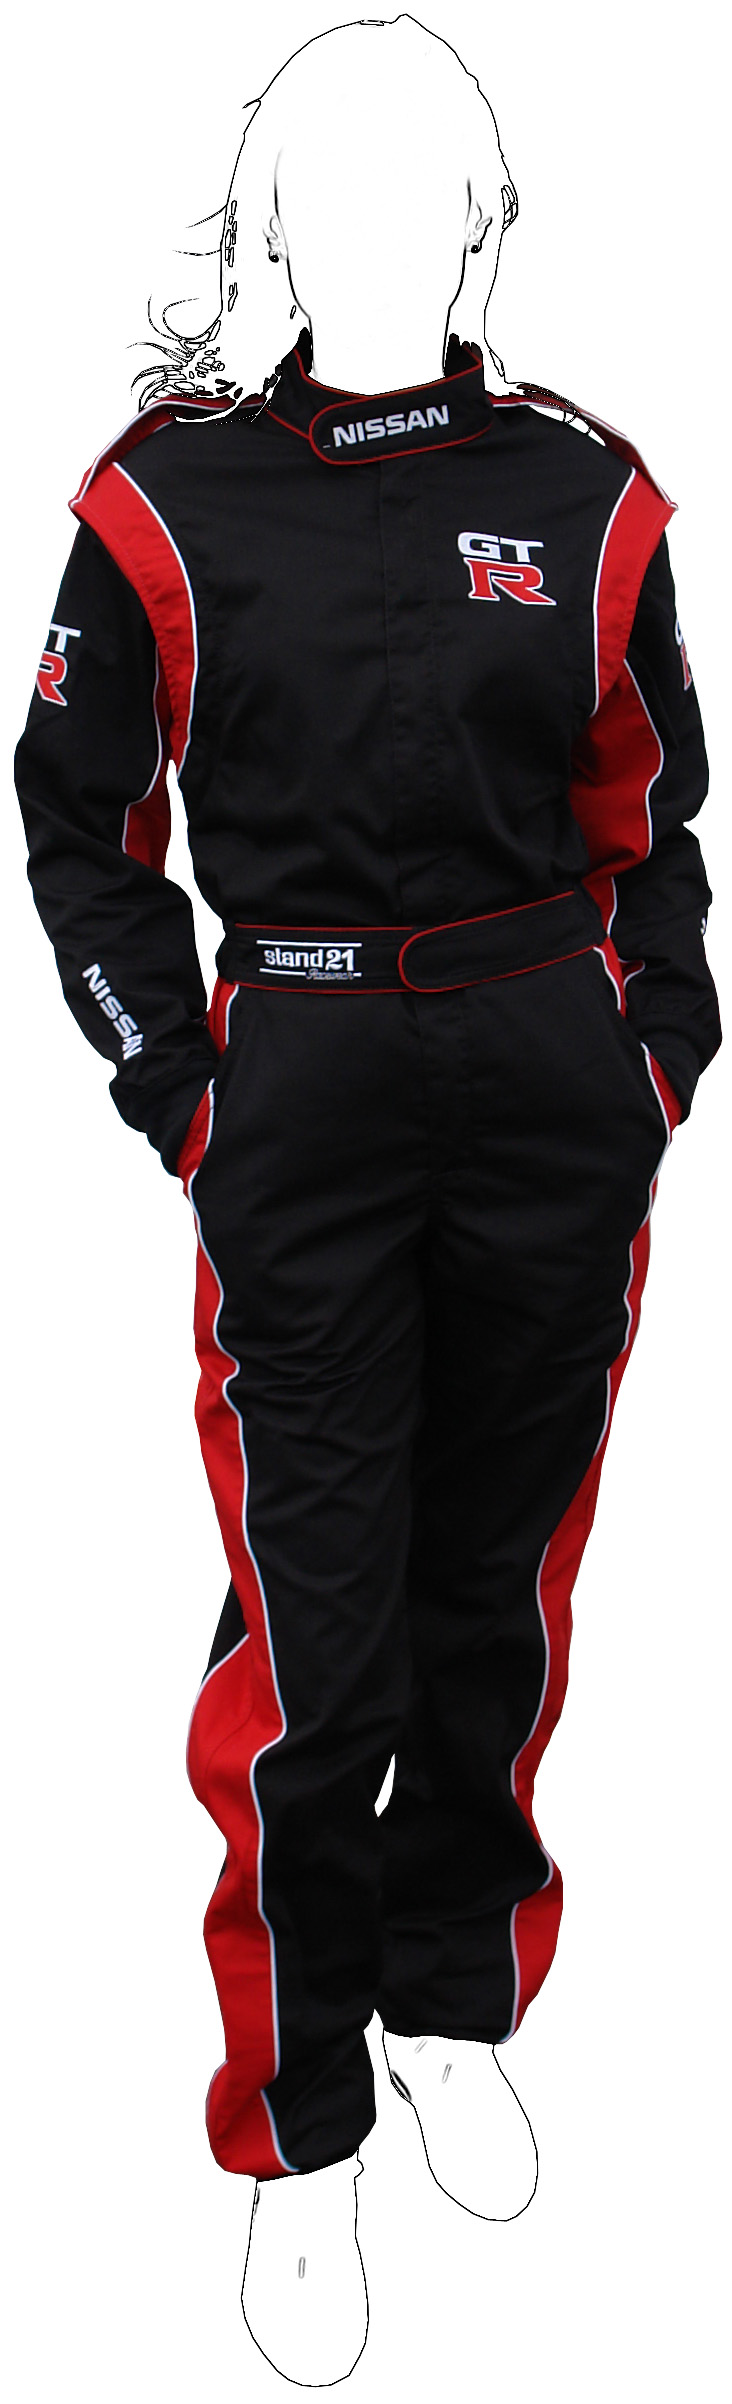 Customized K09 go-kart suit